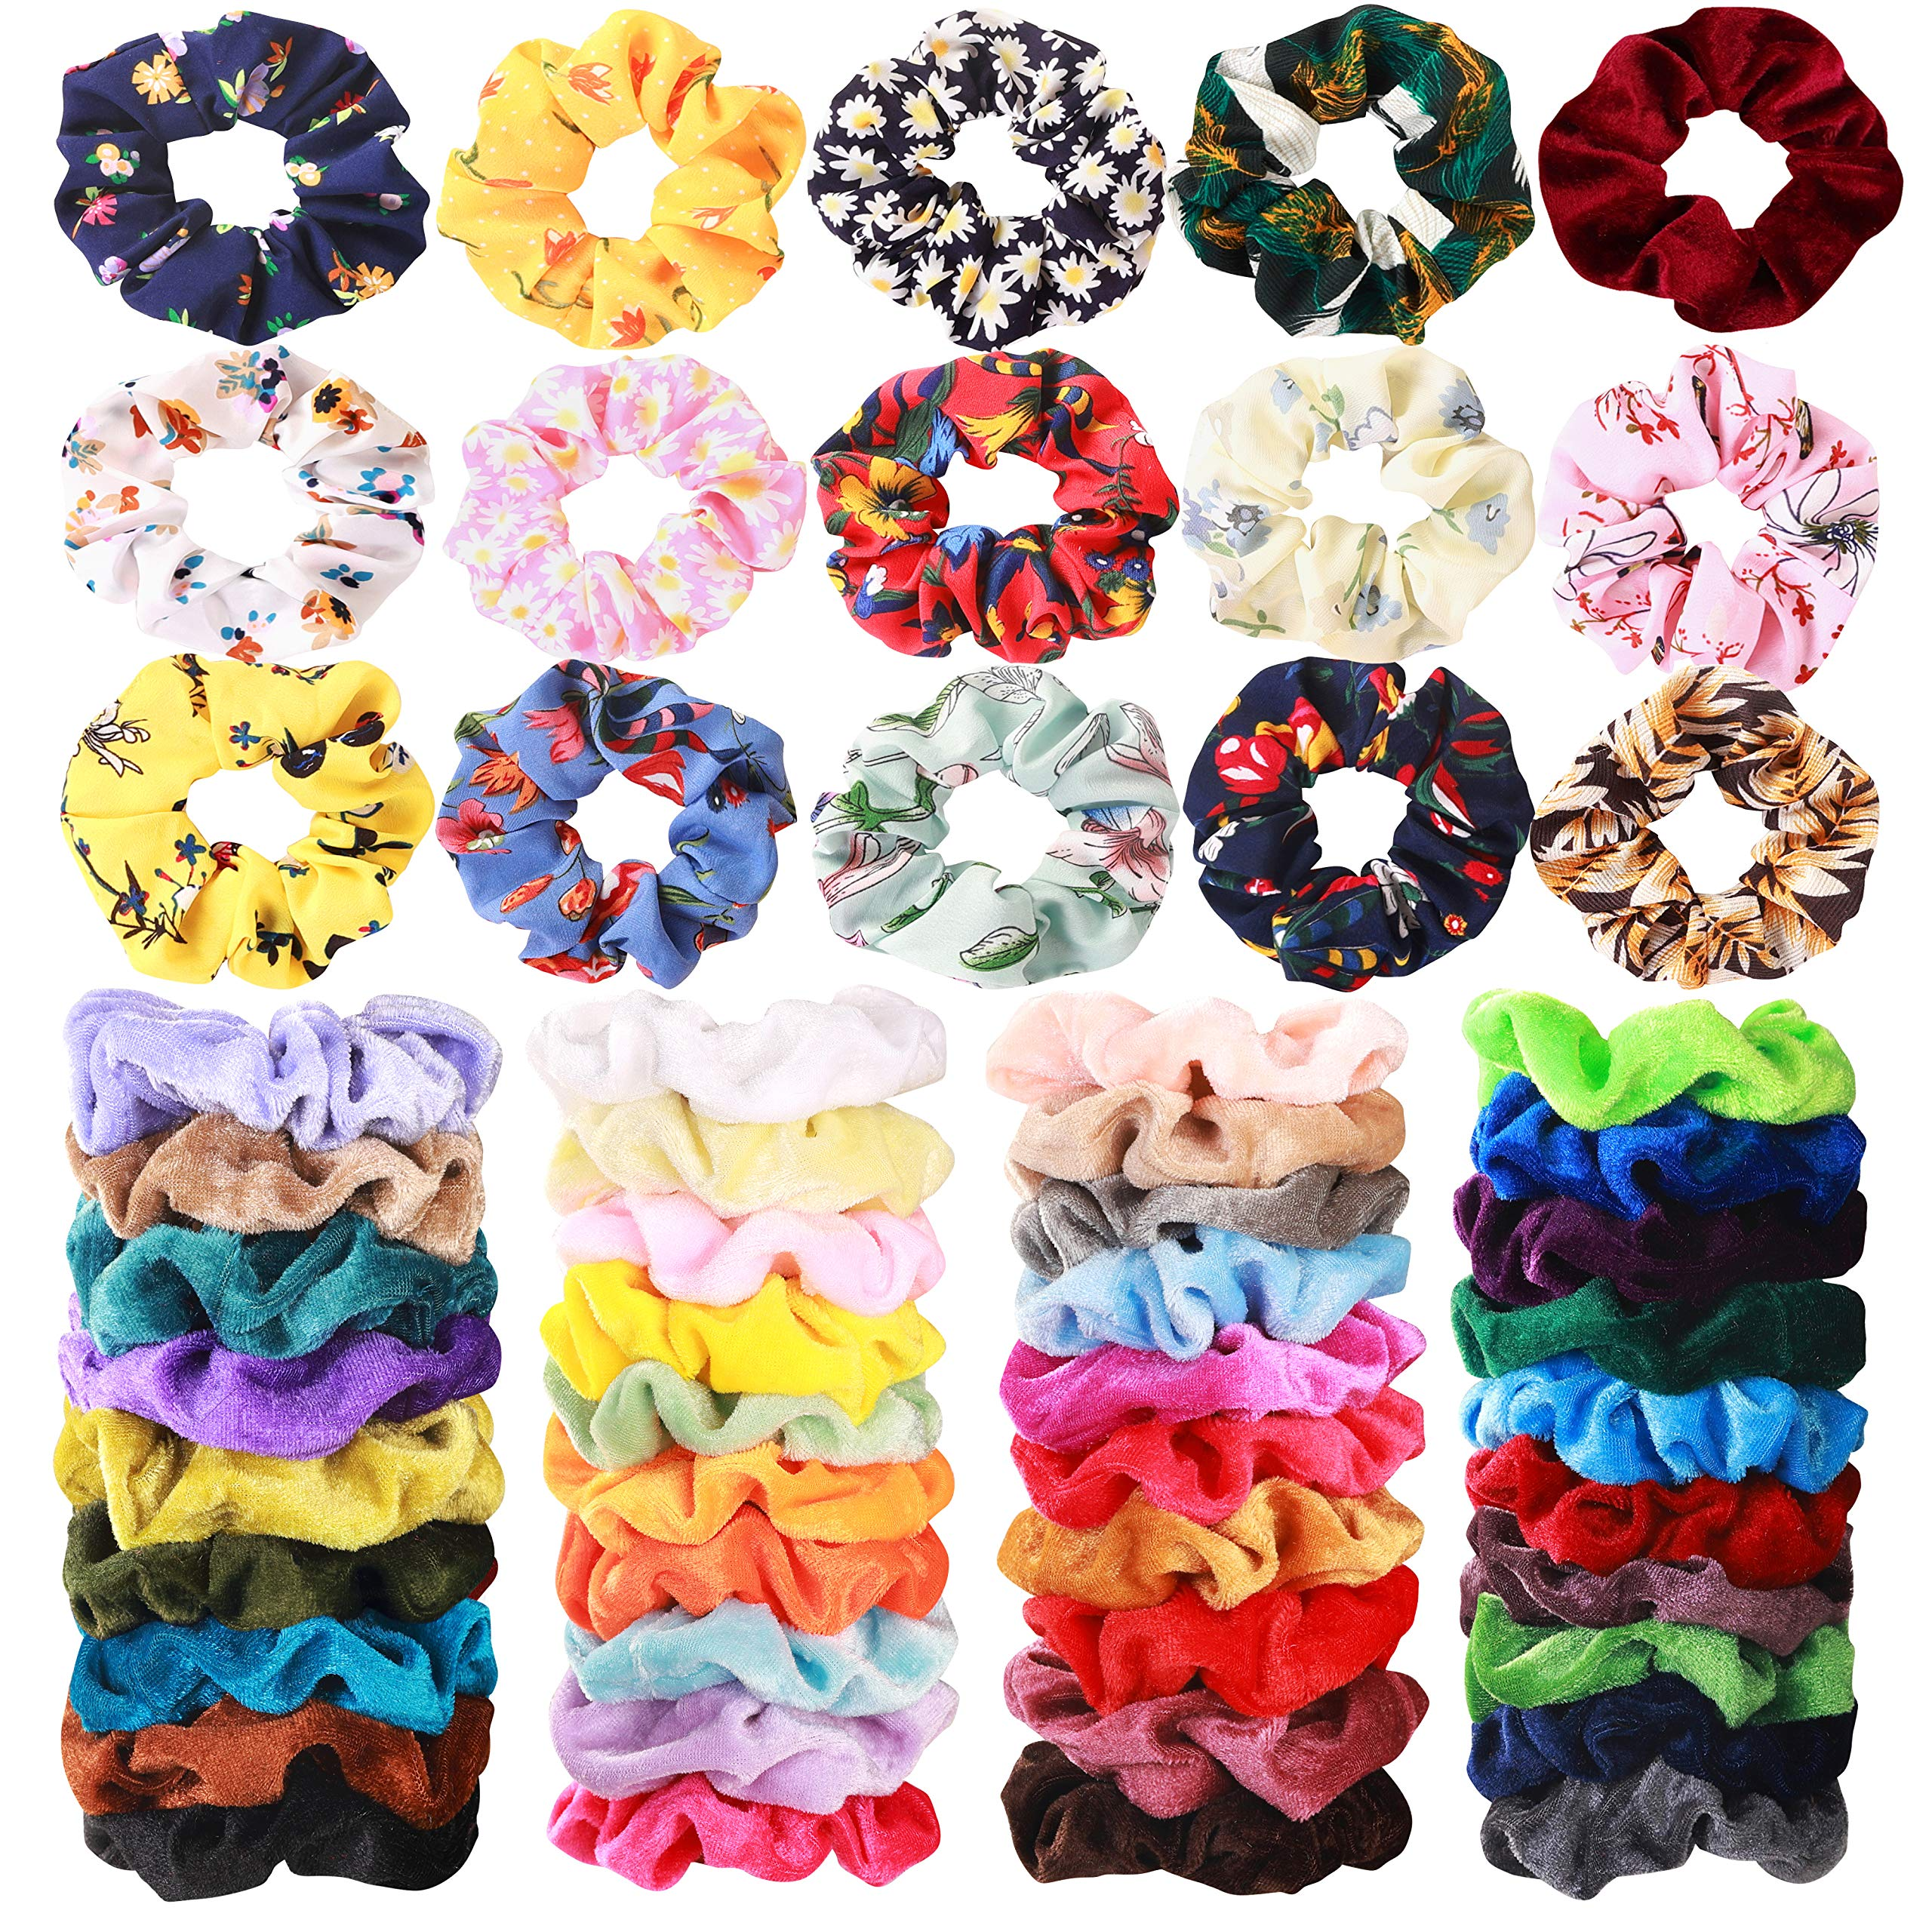 54 Pcs Hair Scrunchies 40 Velvet Hair Scrunchies 14 Chiffon Flower Hair Scrunchies Hair Elastic Scrunchy Ties Ropes Scrunchie for Women or Girls Hair Accessories for Christmas New Year